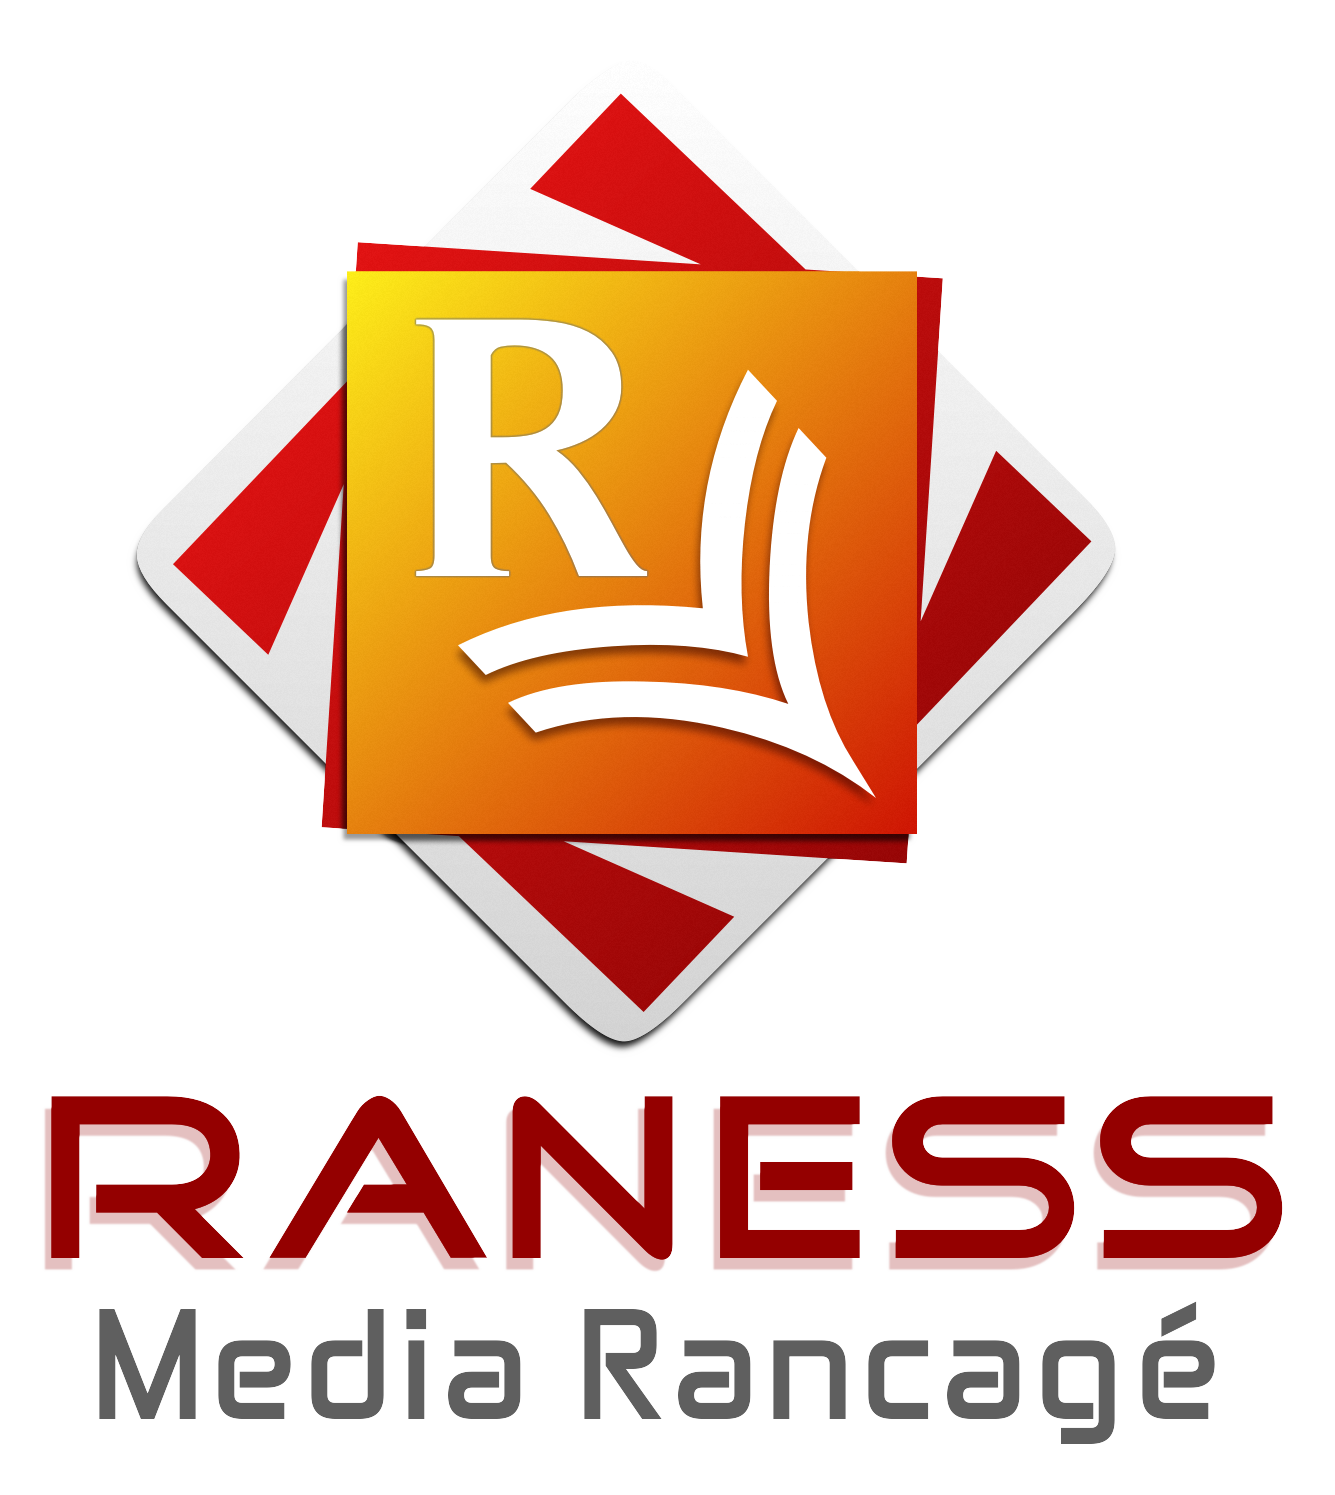 Raness Media Rancage